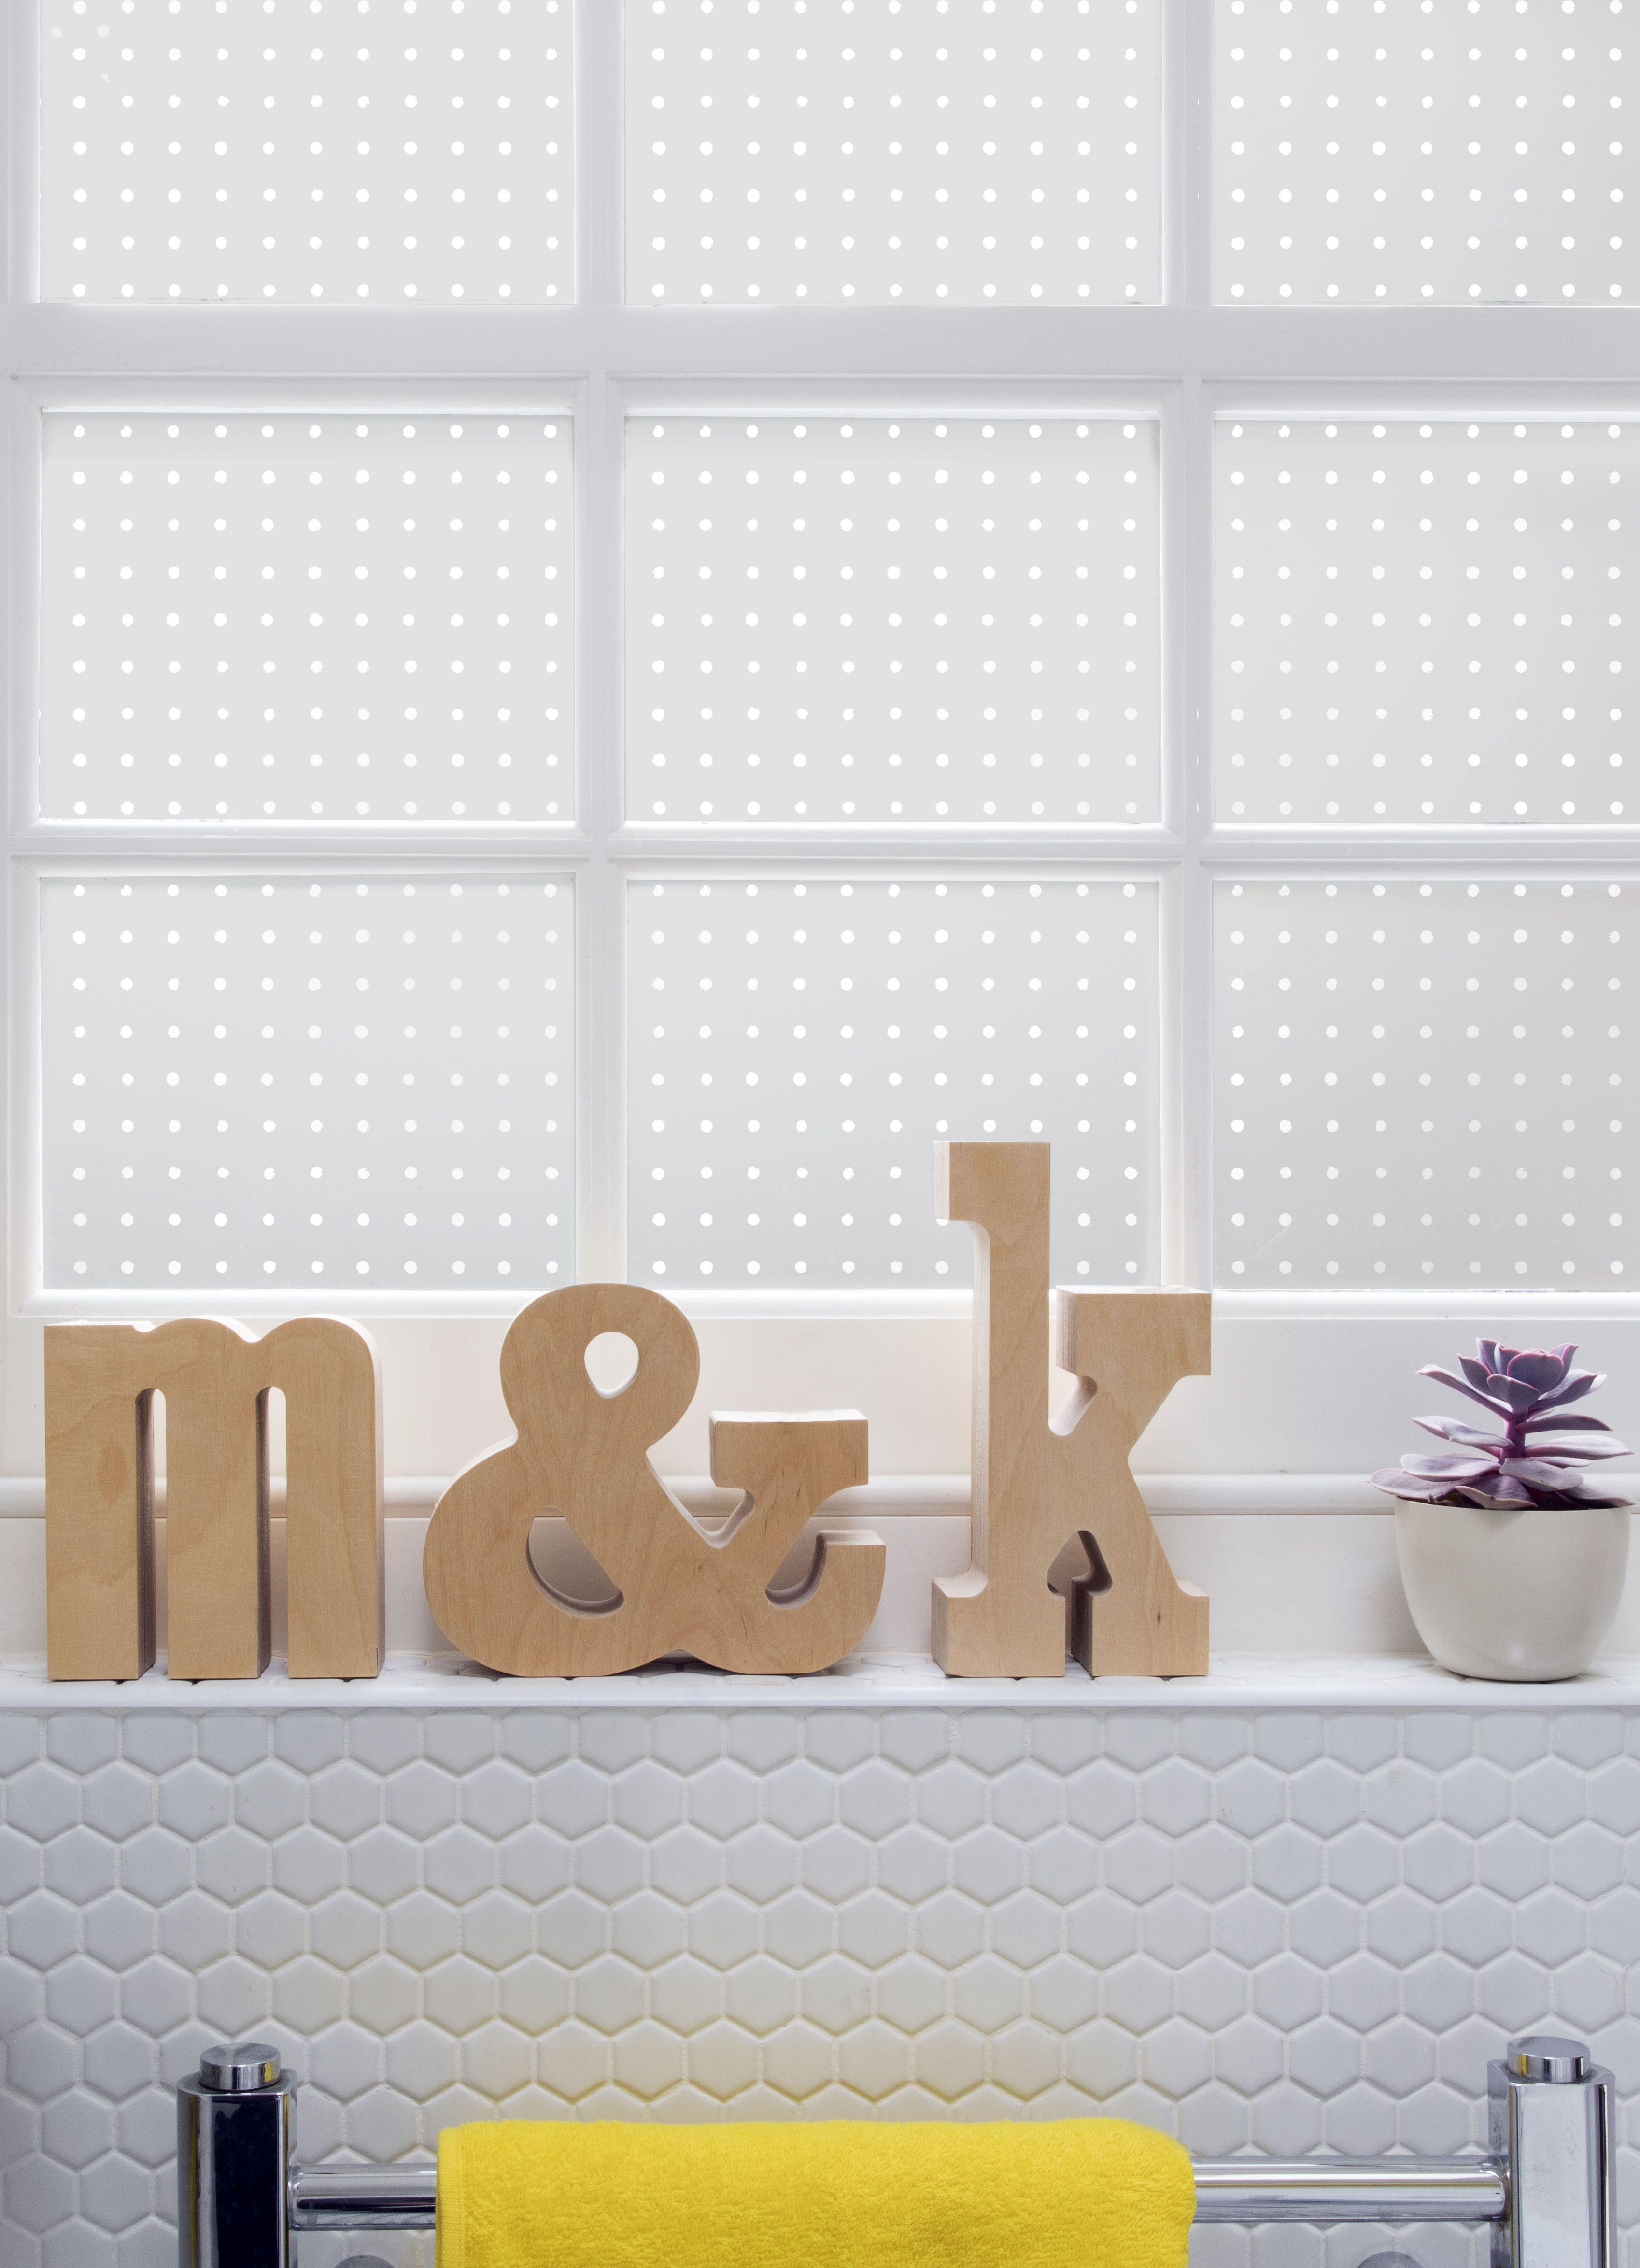 Peggy By Mini Moderns For The Window Film Company